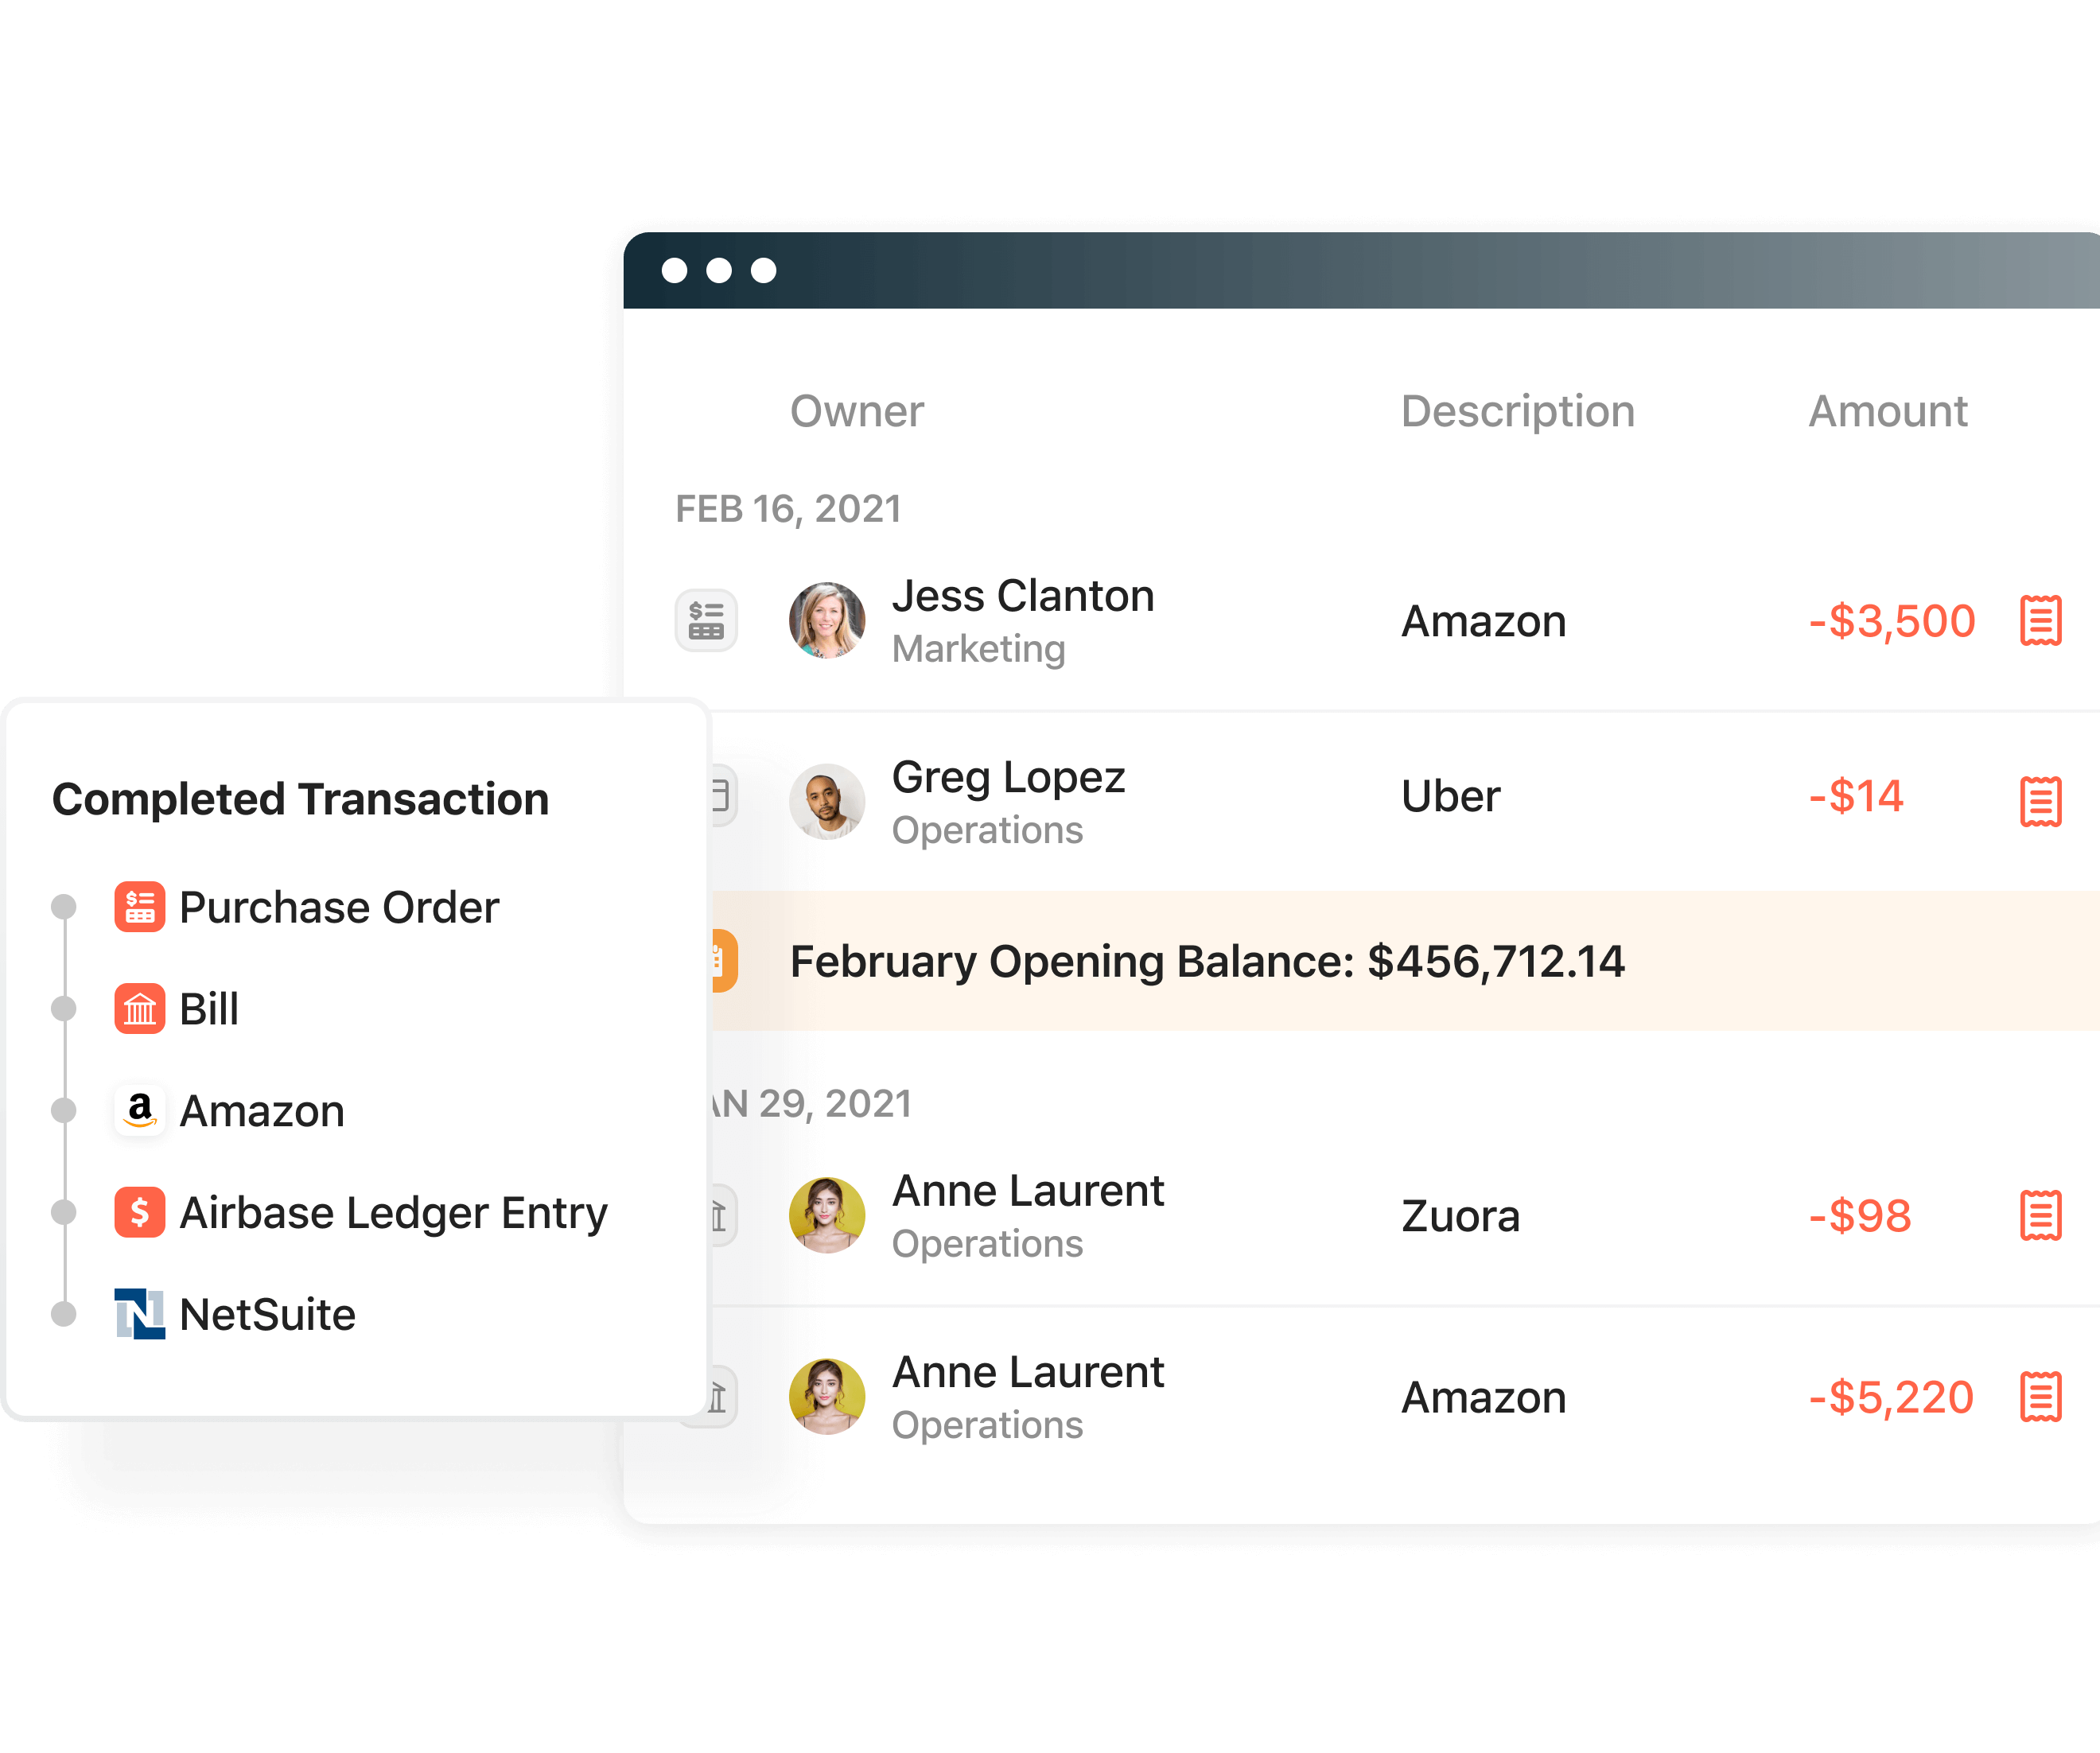 Product screenshot displaying the automated accounting functionality in Airbase.